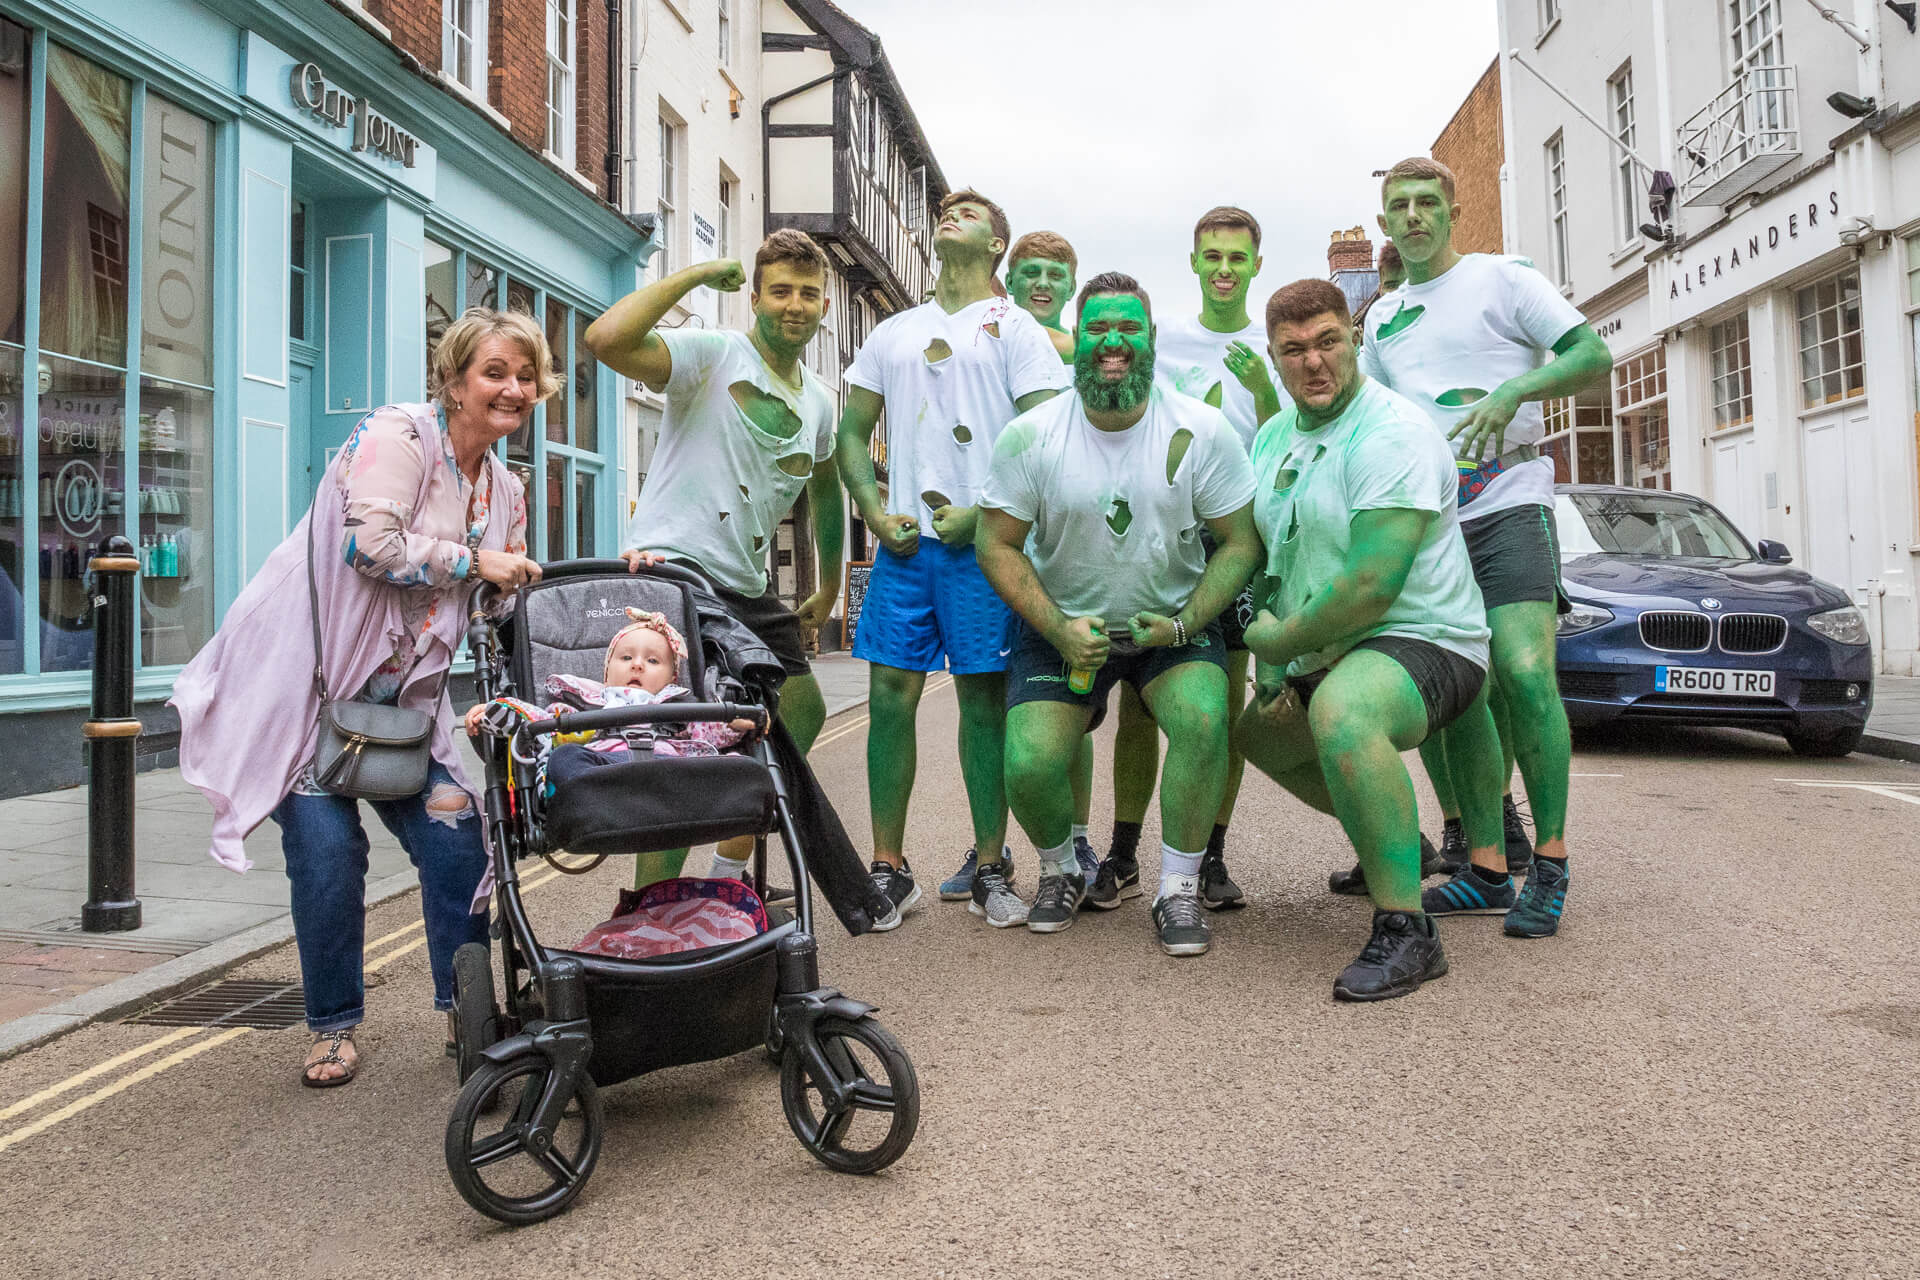 A street image taken during the Worcester Music Festival 2019 of a group of lads from a local rugby club dressed (in ripped/torn shirts and shorts), and made up as, the character Hulk; to add to the image several adopt a 'Hulk' type of pose. On the right hand side of the image (photobombing the scene) is a smiling lady with a baby in a pushchair. Her pose seems to suggest )in a light hearted way) that one of the 'Hulks' could be the childs father!